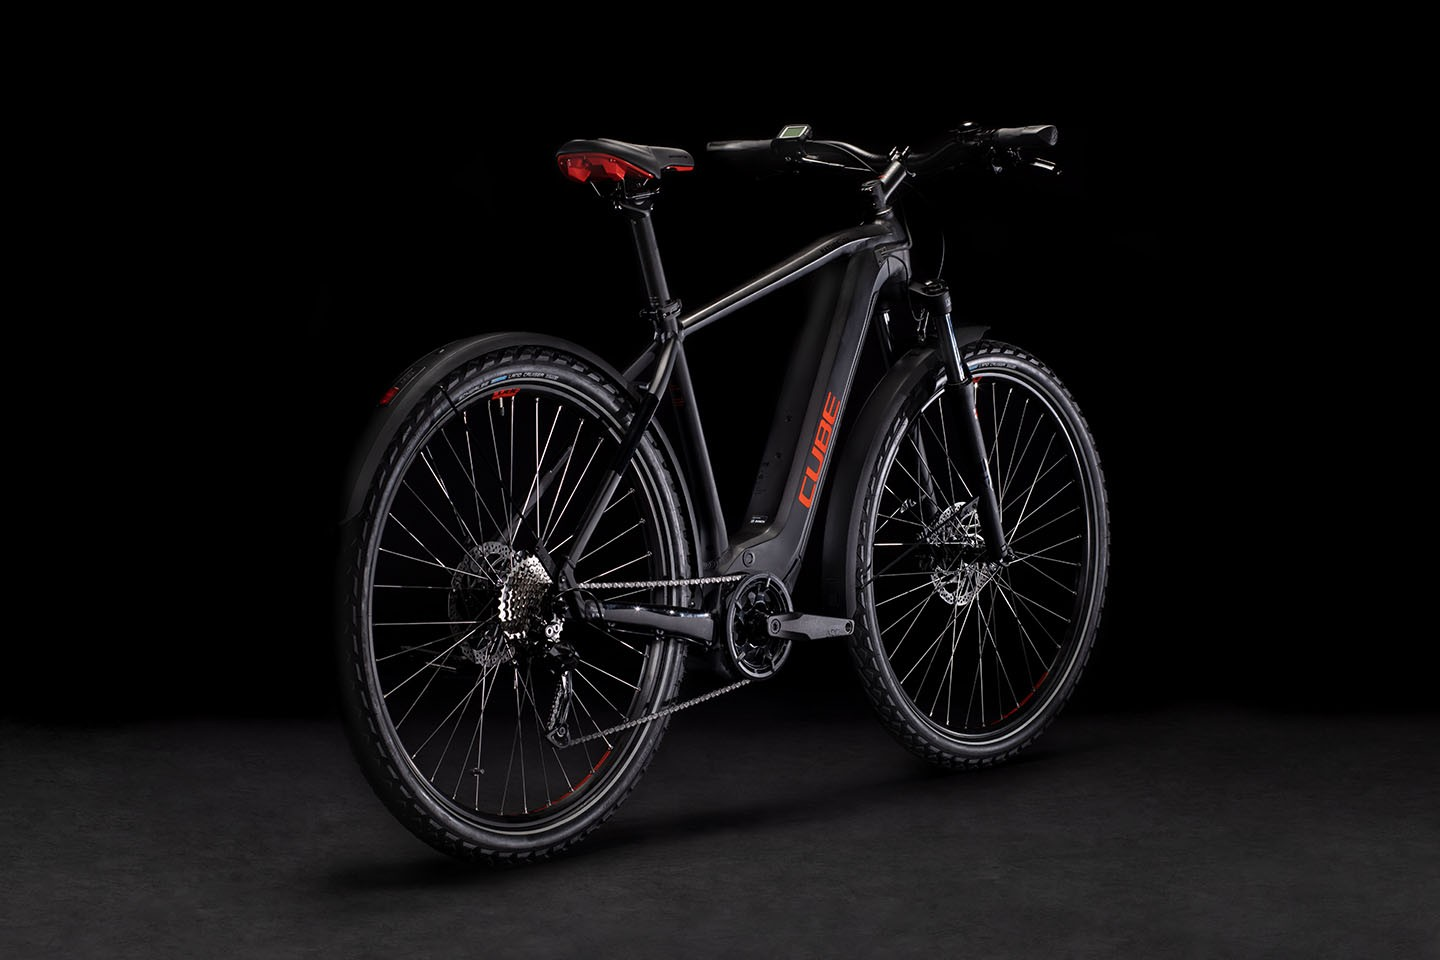 https://w8w5m3f8.stackpathcdn.com/22475/vtc-electrique-cube-nature-hybrid-one-allroad-500-ou-625wh-cadre-mixte.jpg